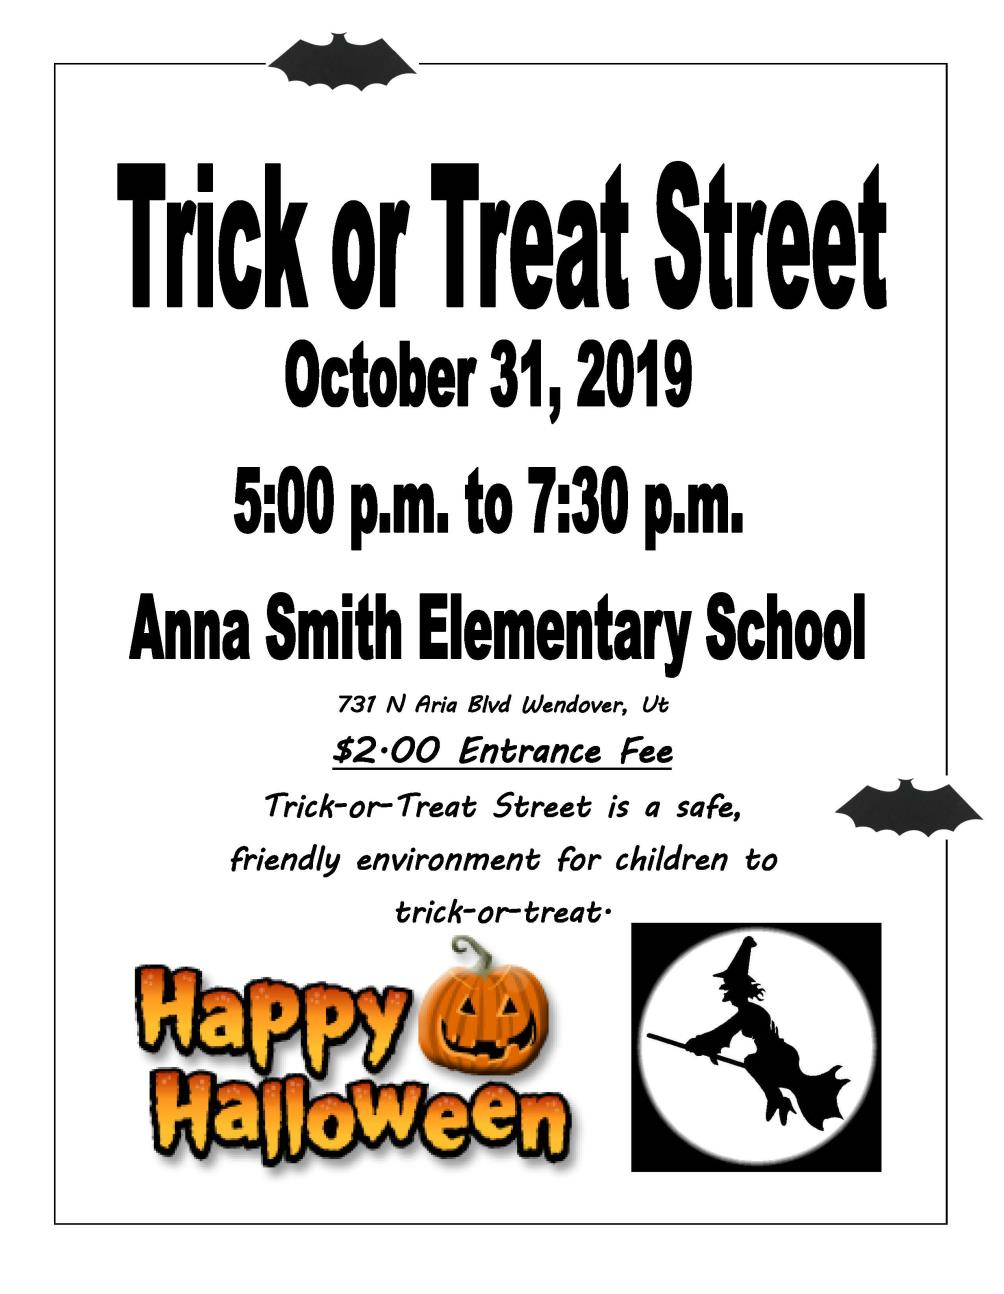 Trick or Treat Flyer 10-31-2019